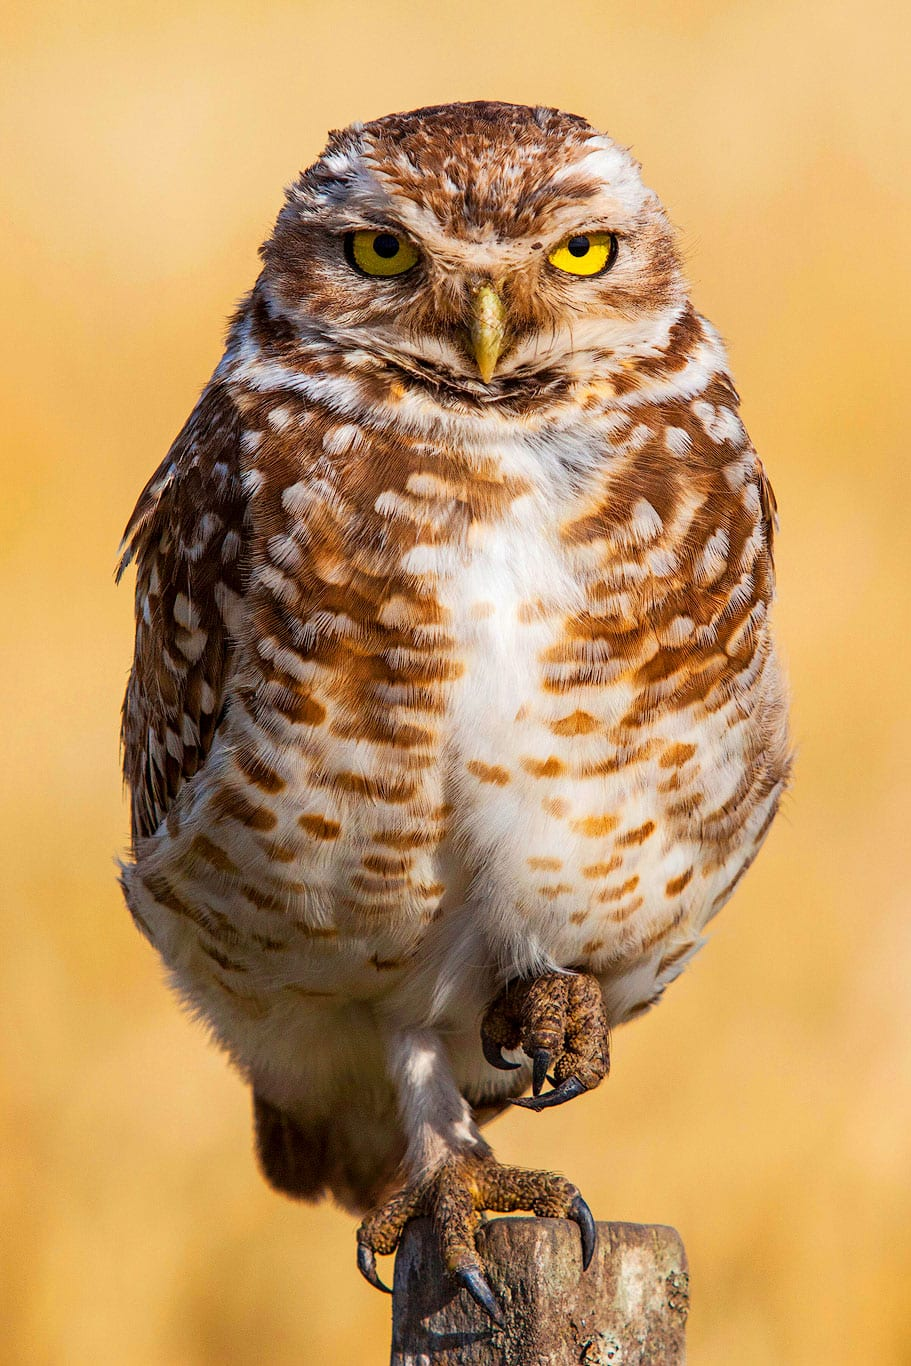 Burrowing Owl in the Pampas, Argentina